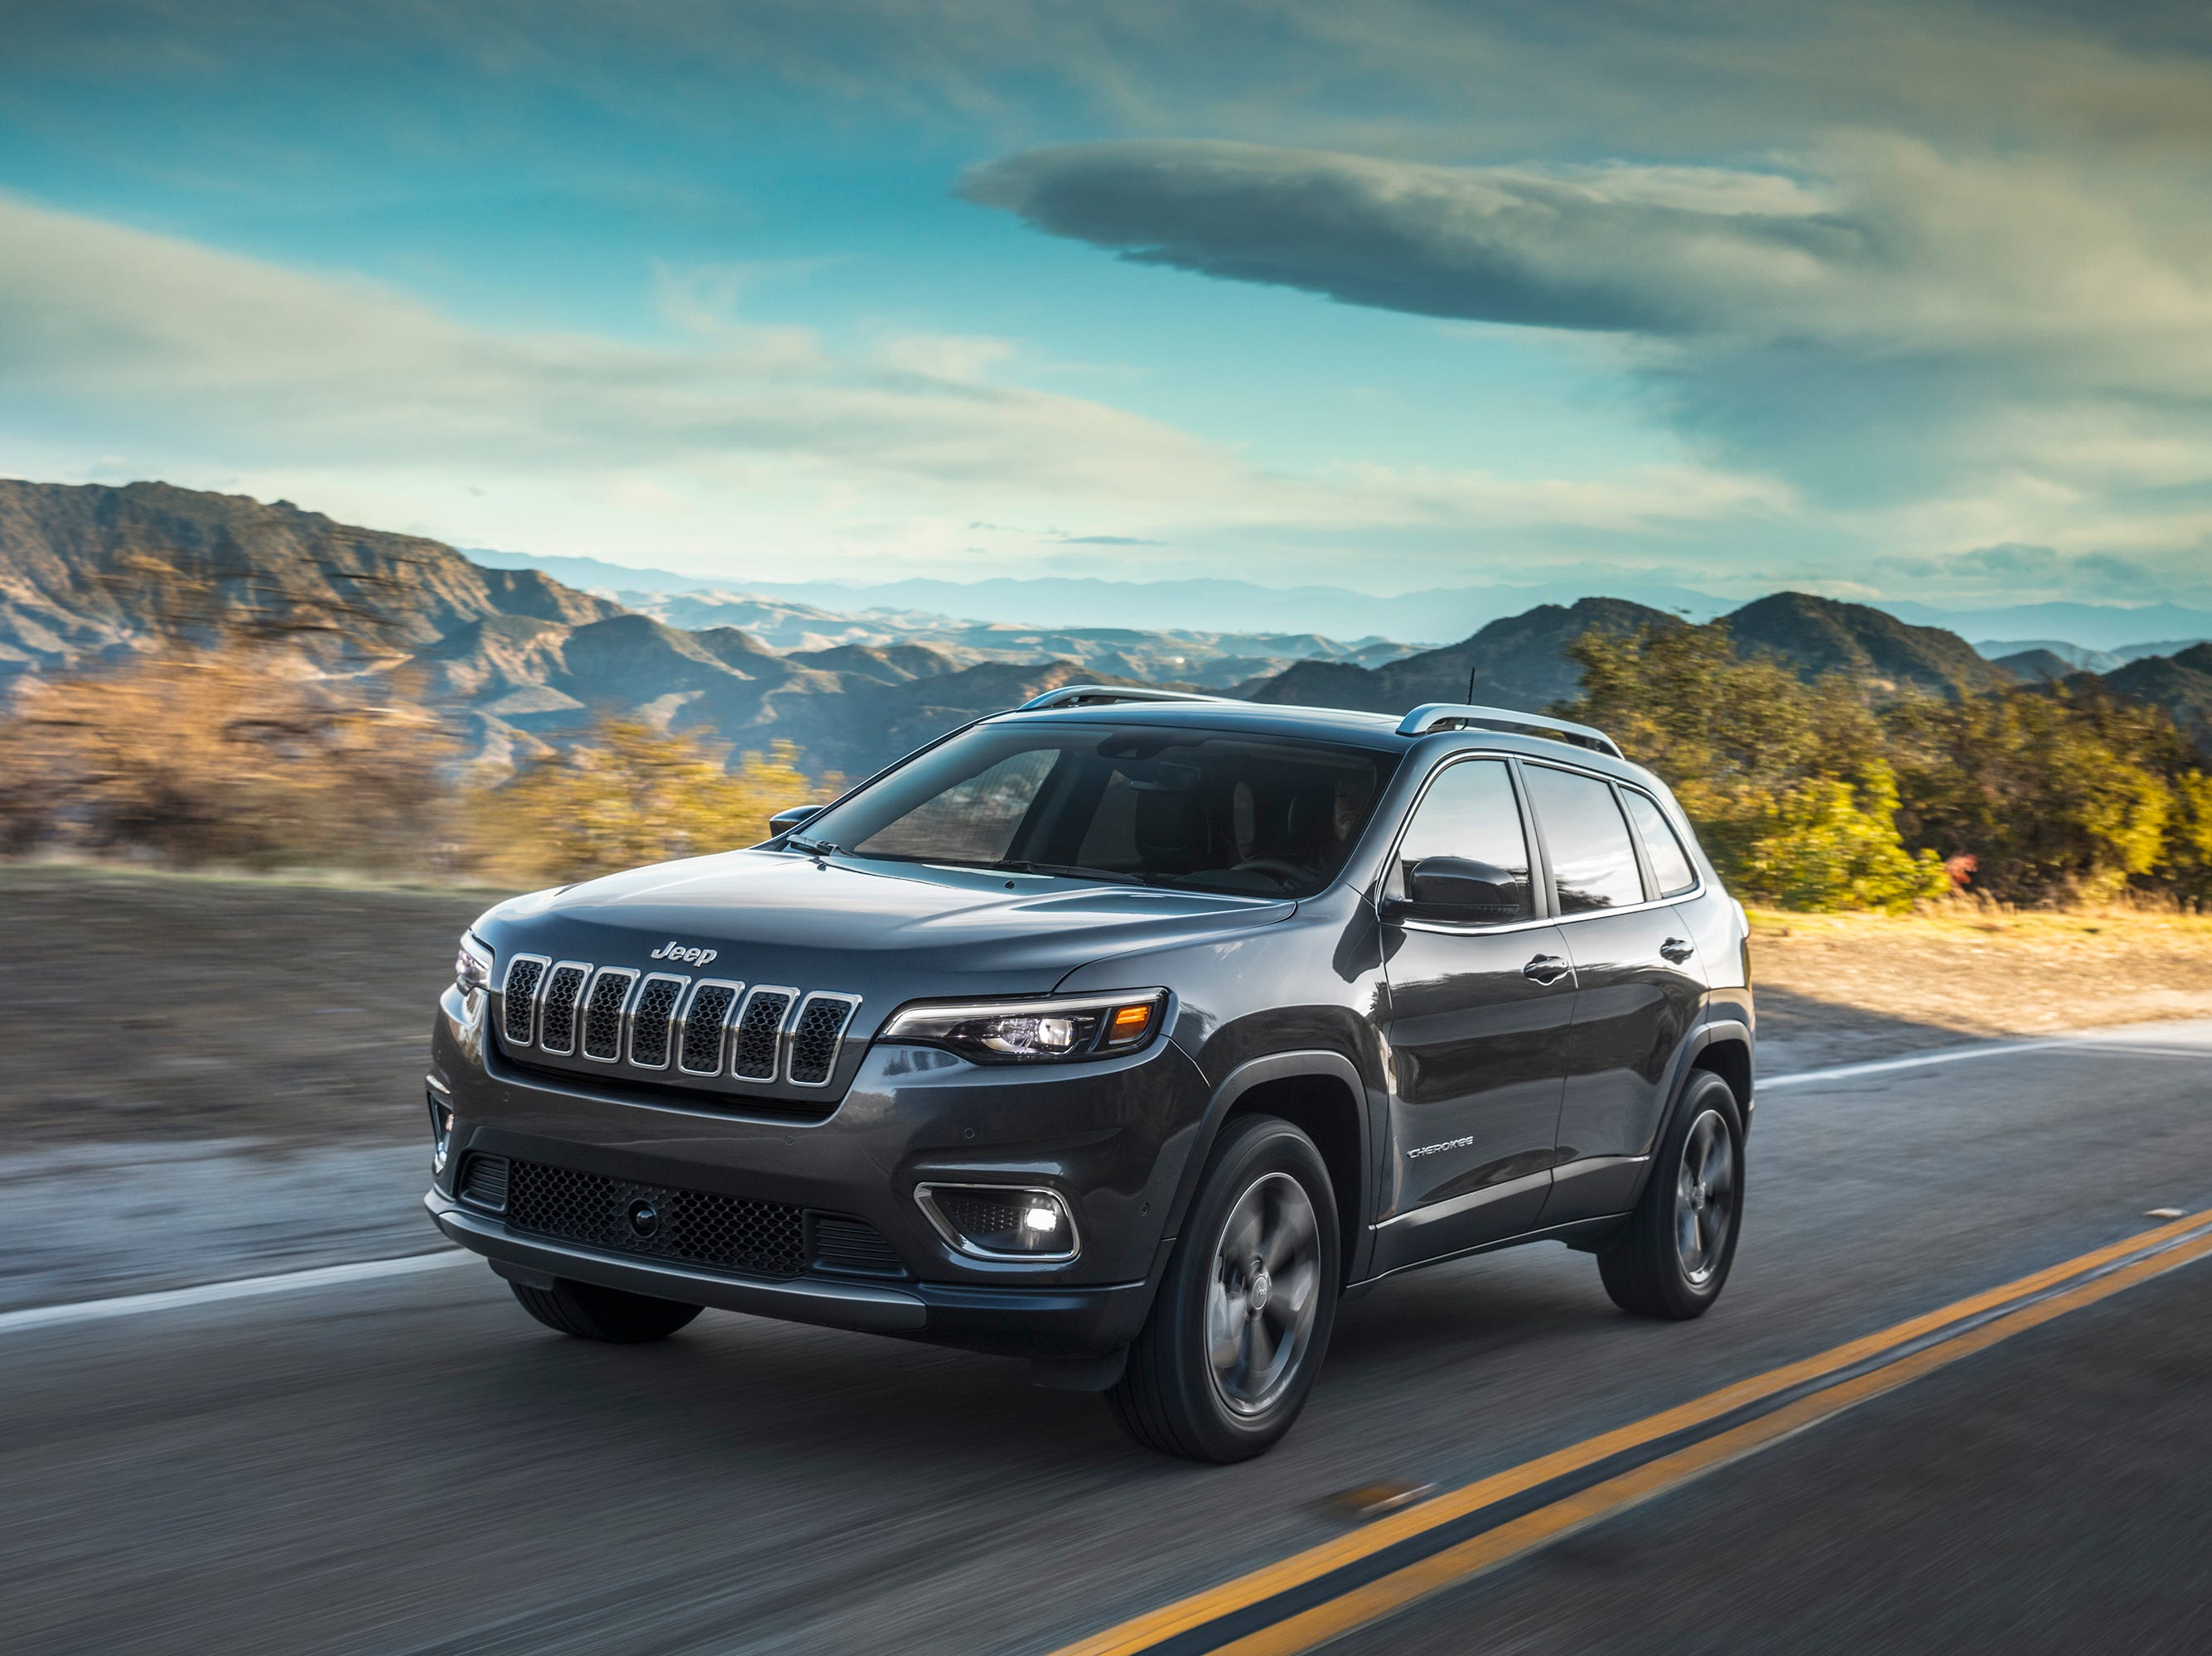 Stalling prompts recall of 2019 Jeep Cherokees with 2.4-liter engines